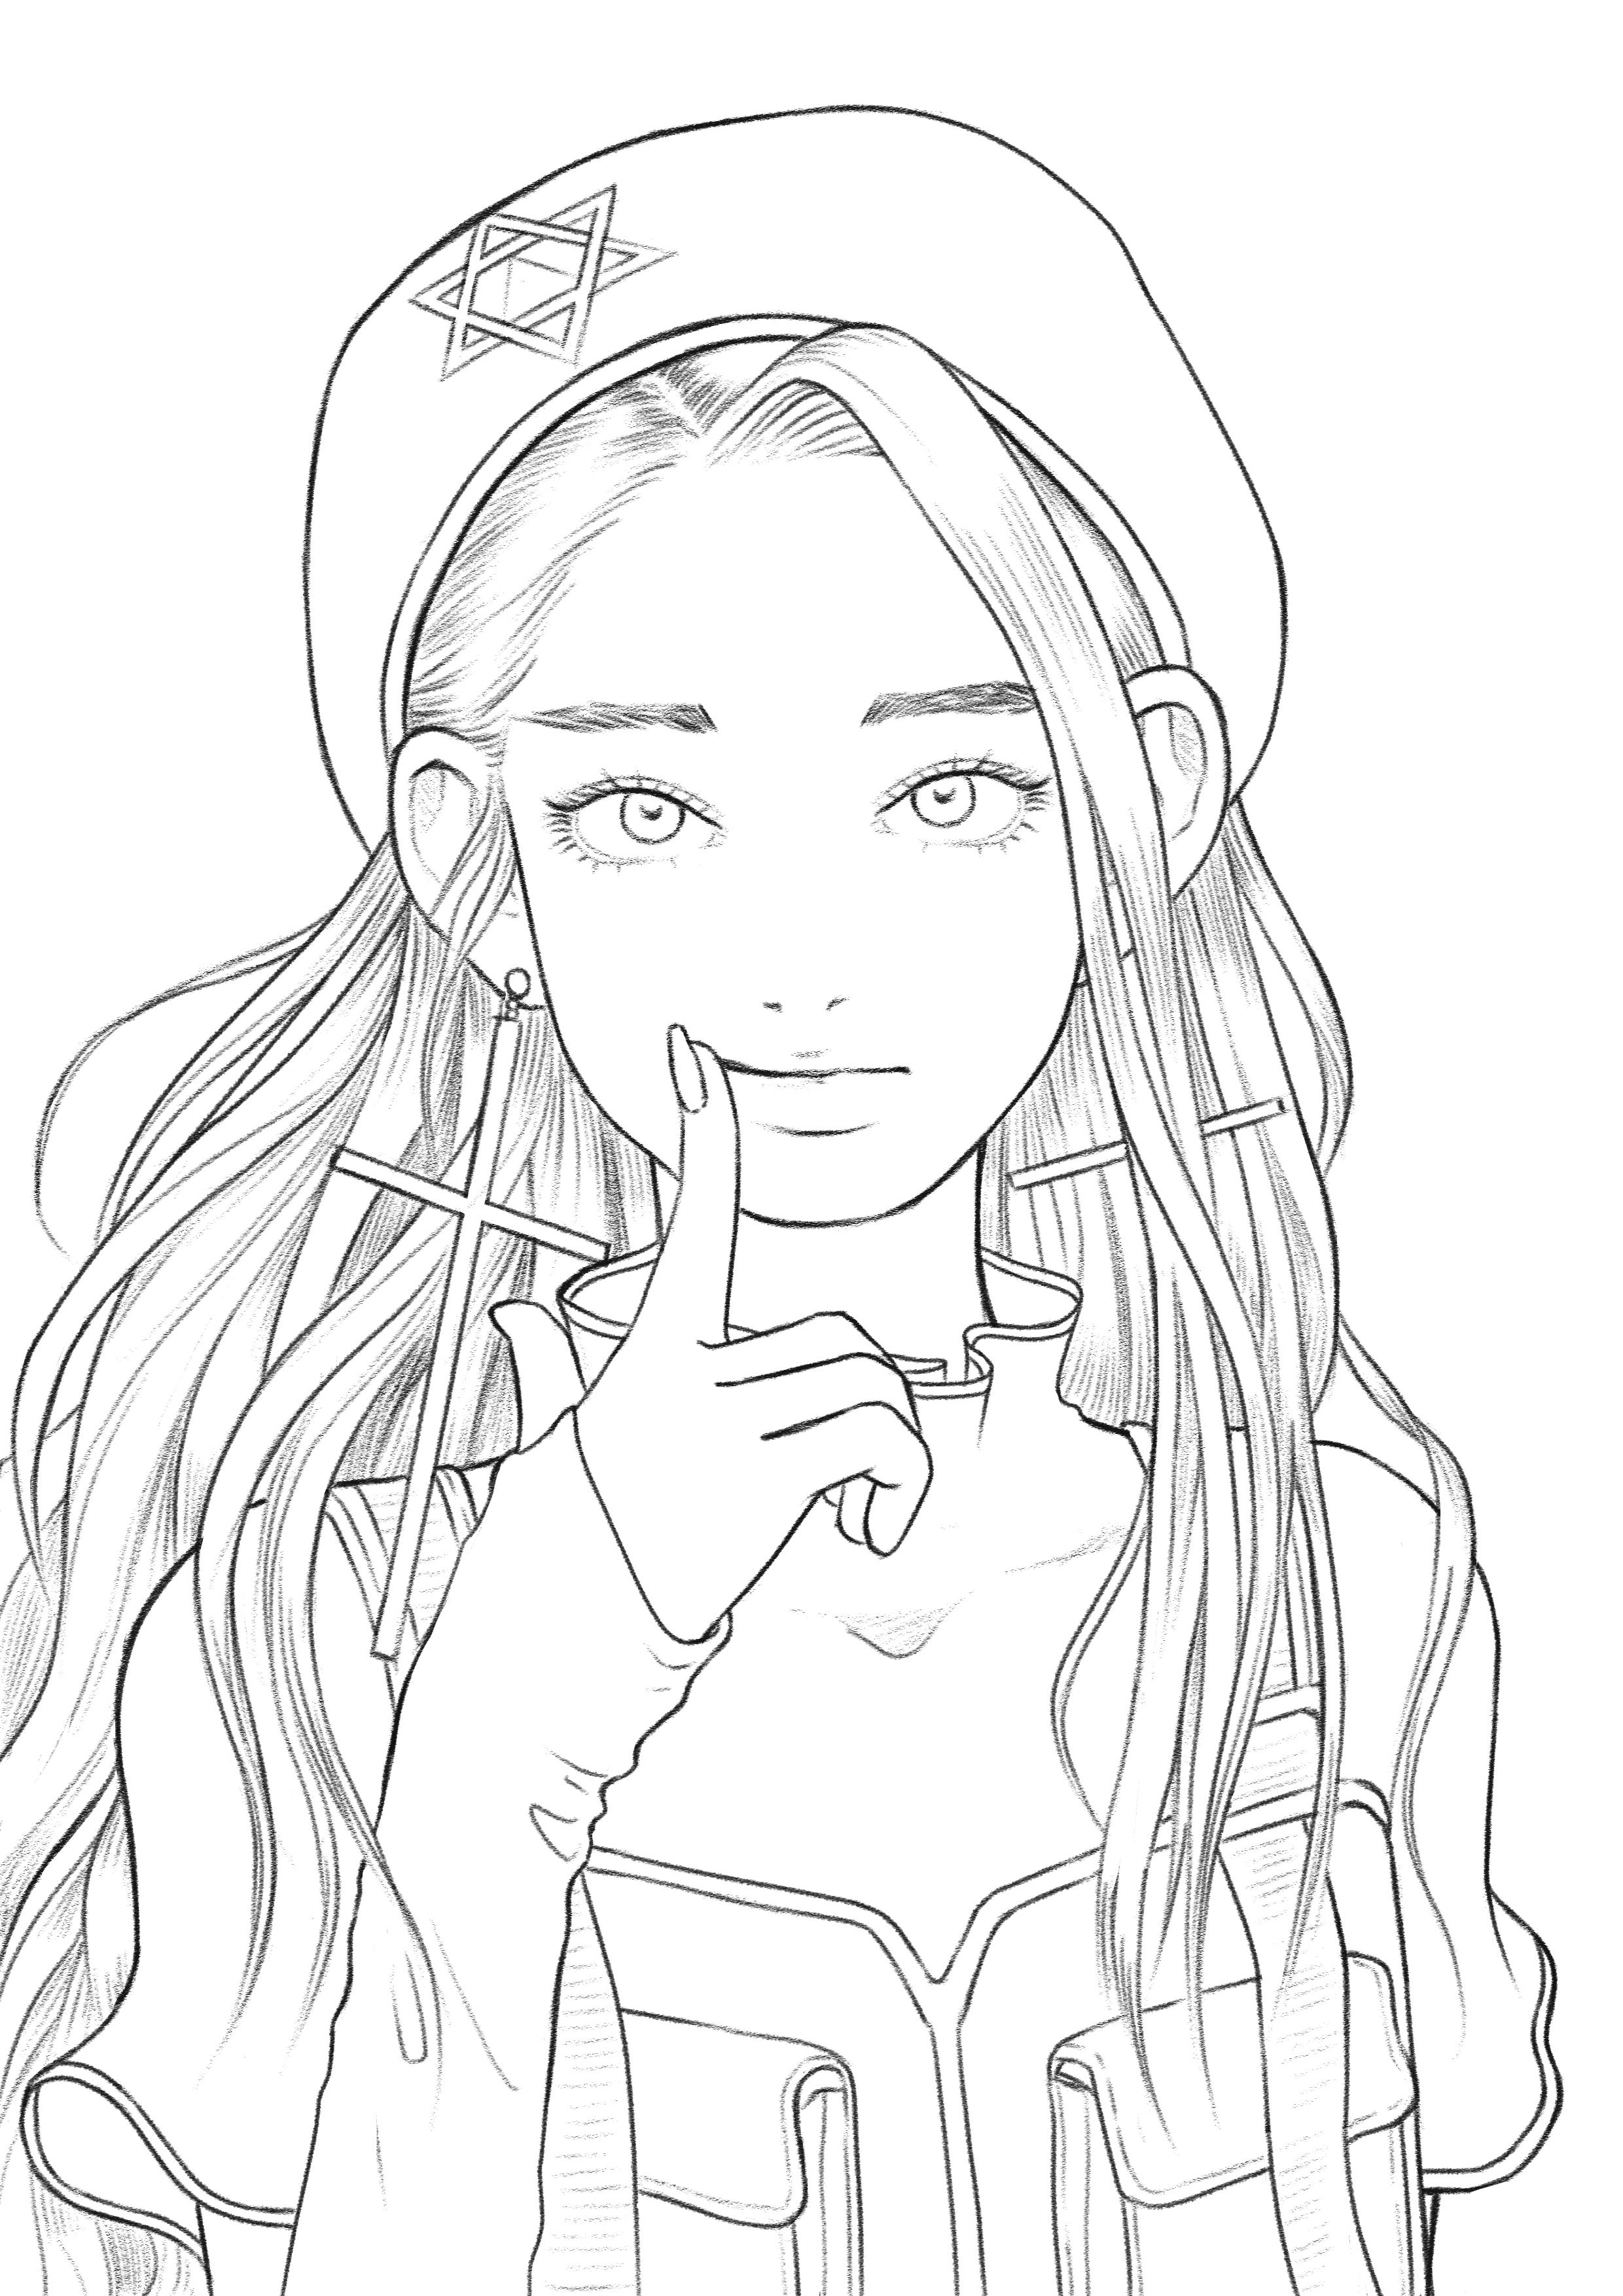 Military Girl Coloring Page For Adults Printable Easy Etsy In 2021 Anime Lineart Cartoon Girl Drawing Anime Character Drawing